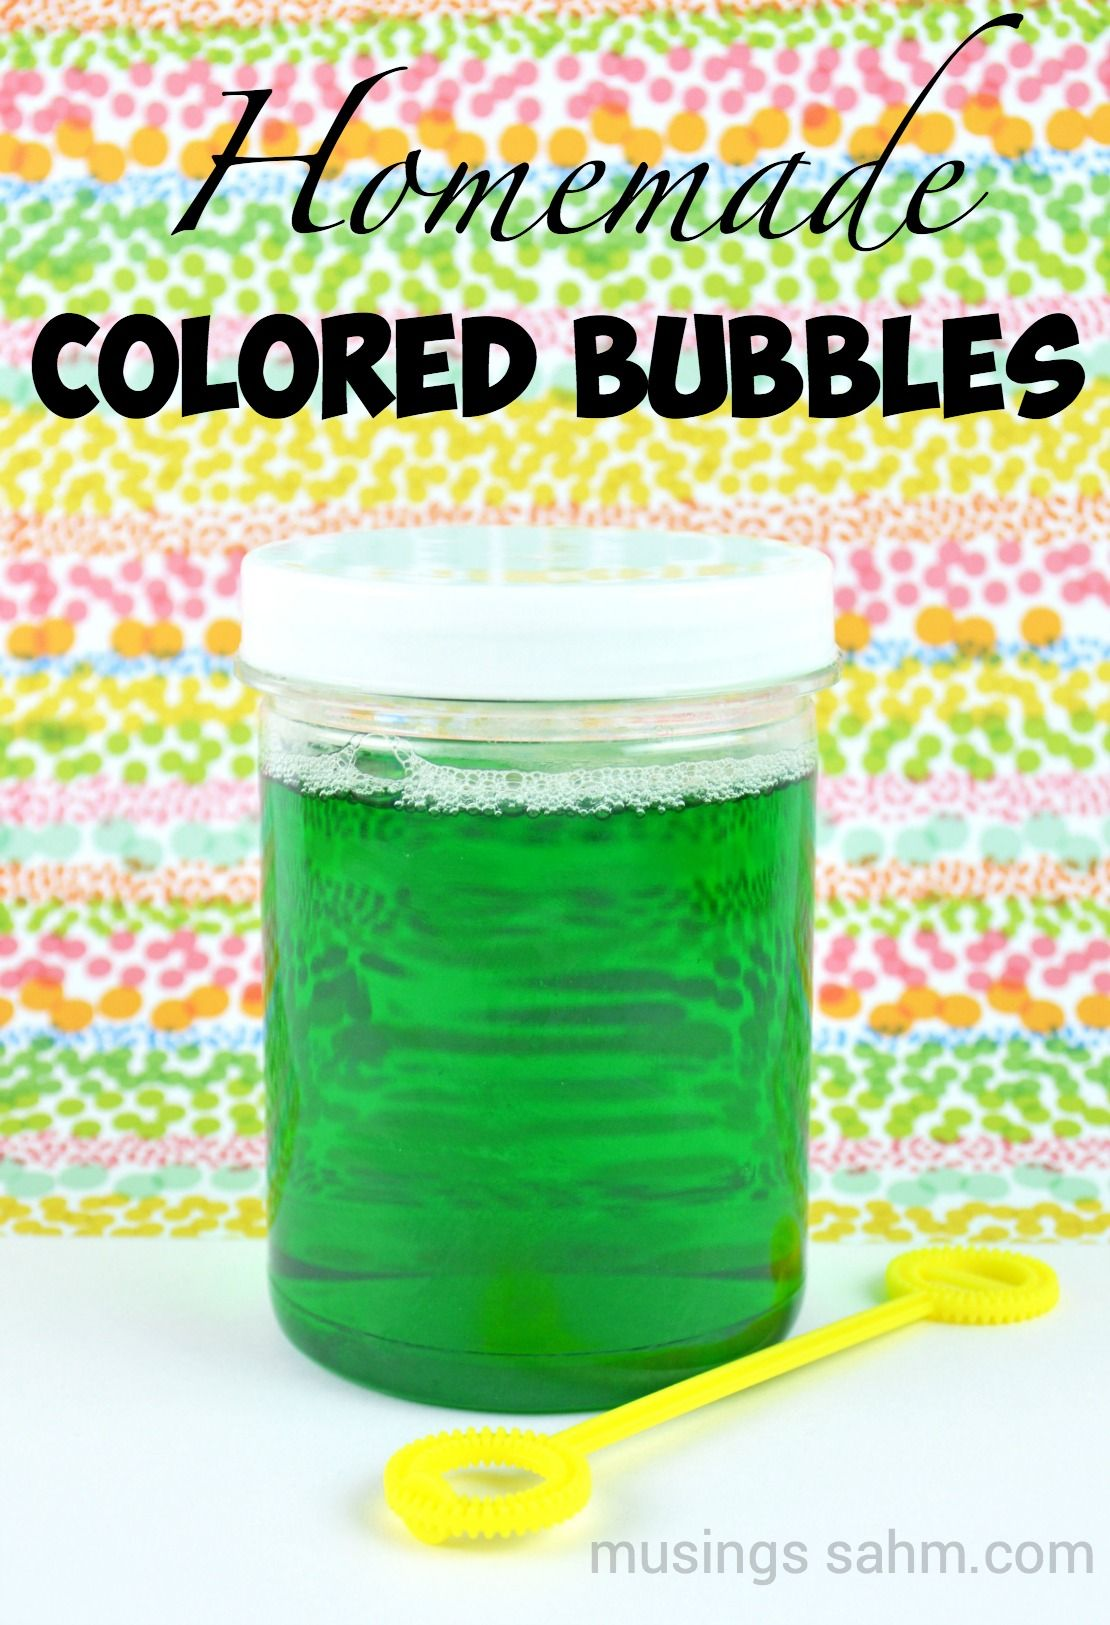 Homemade Colored Bubbles | Homemade, Activities and Craft